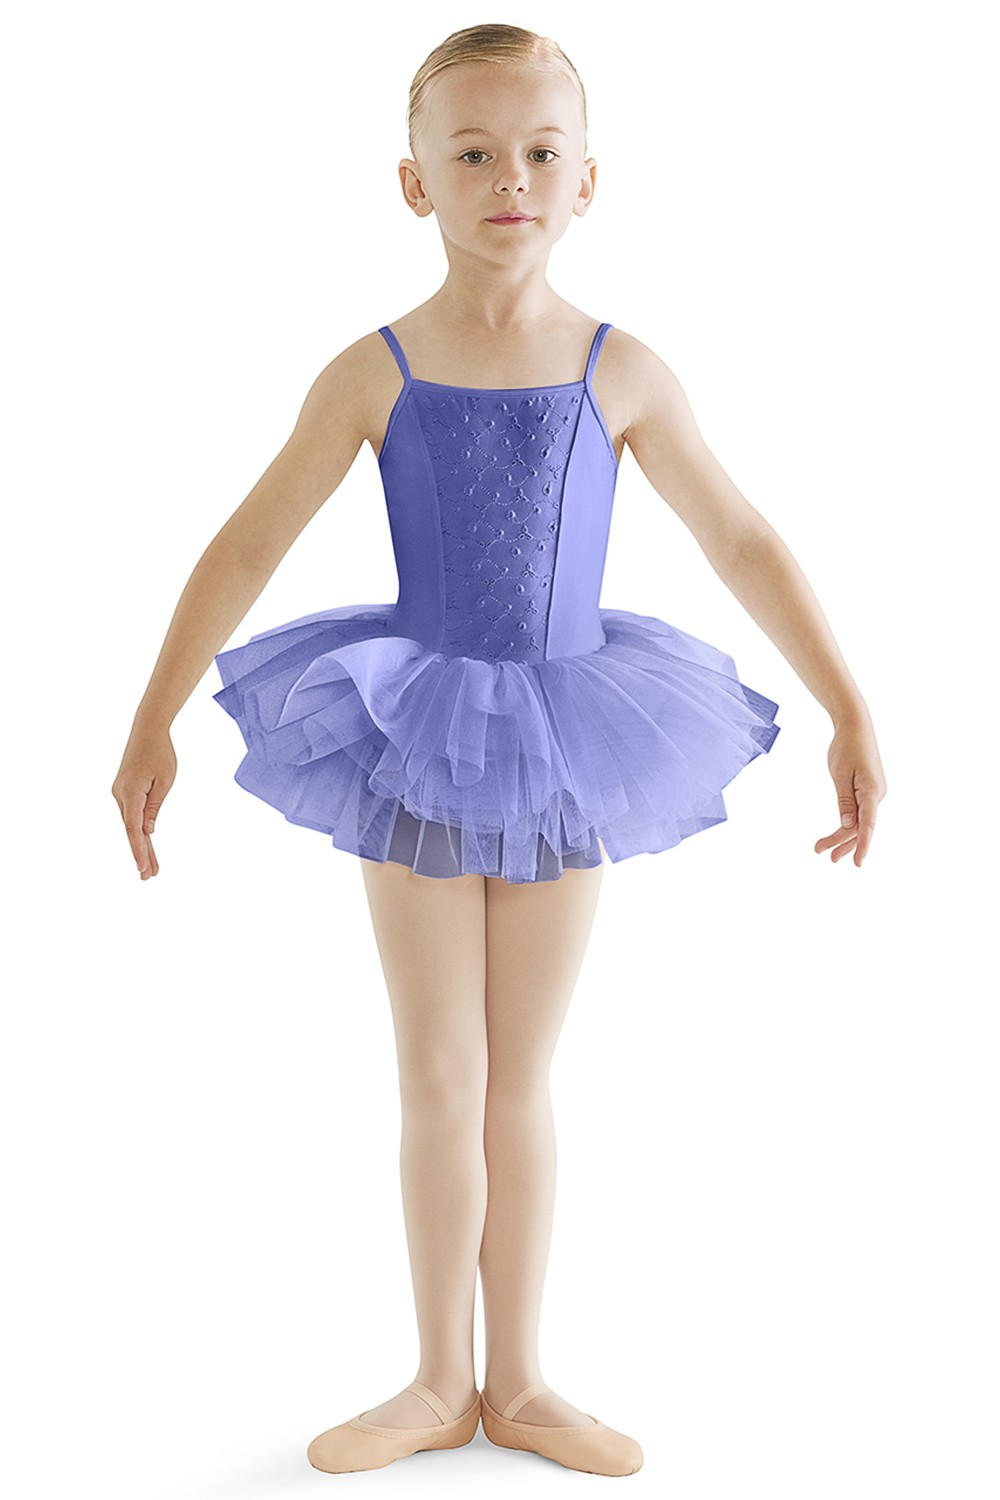 Beaches Children's Dance Leotards